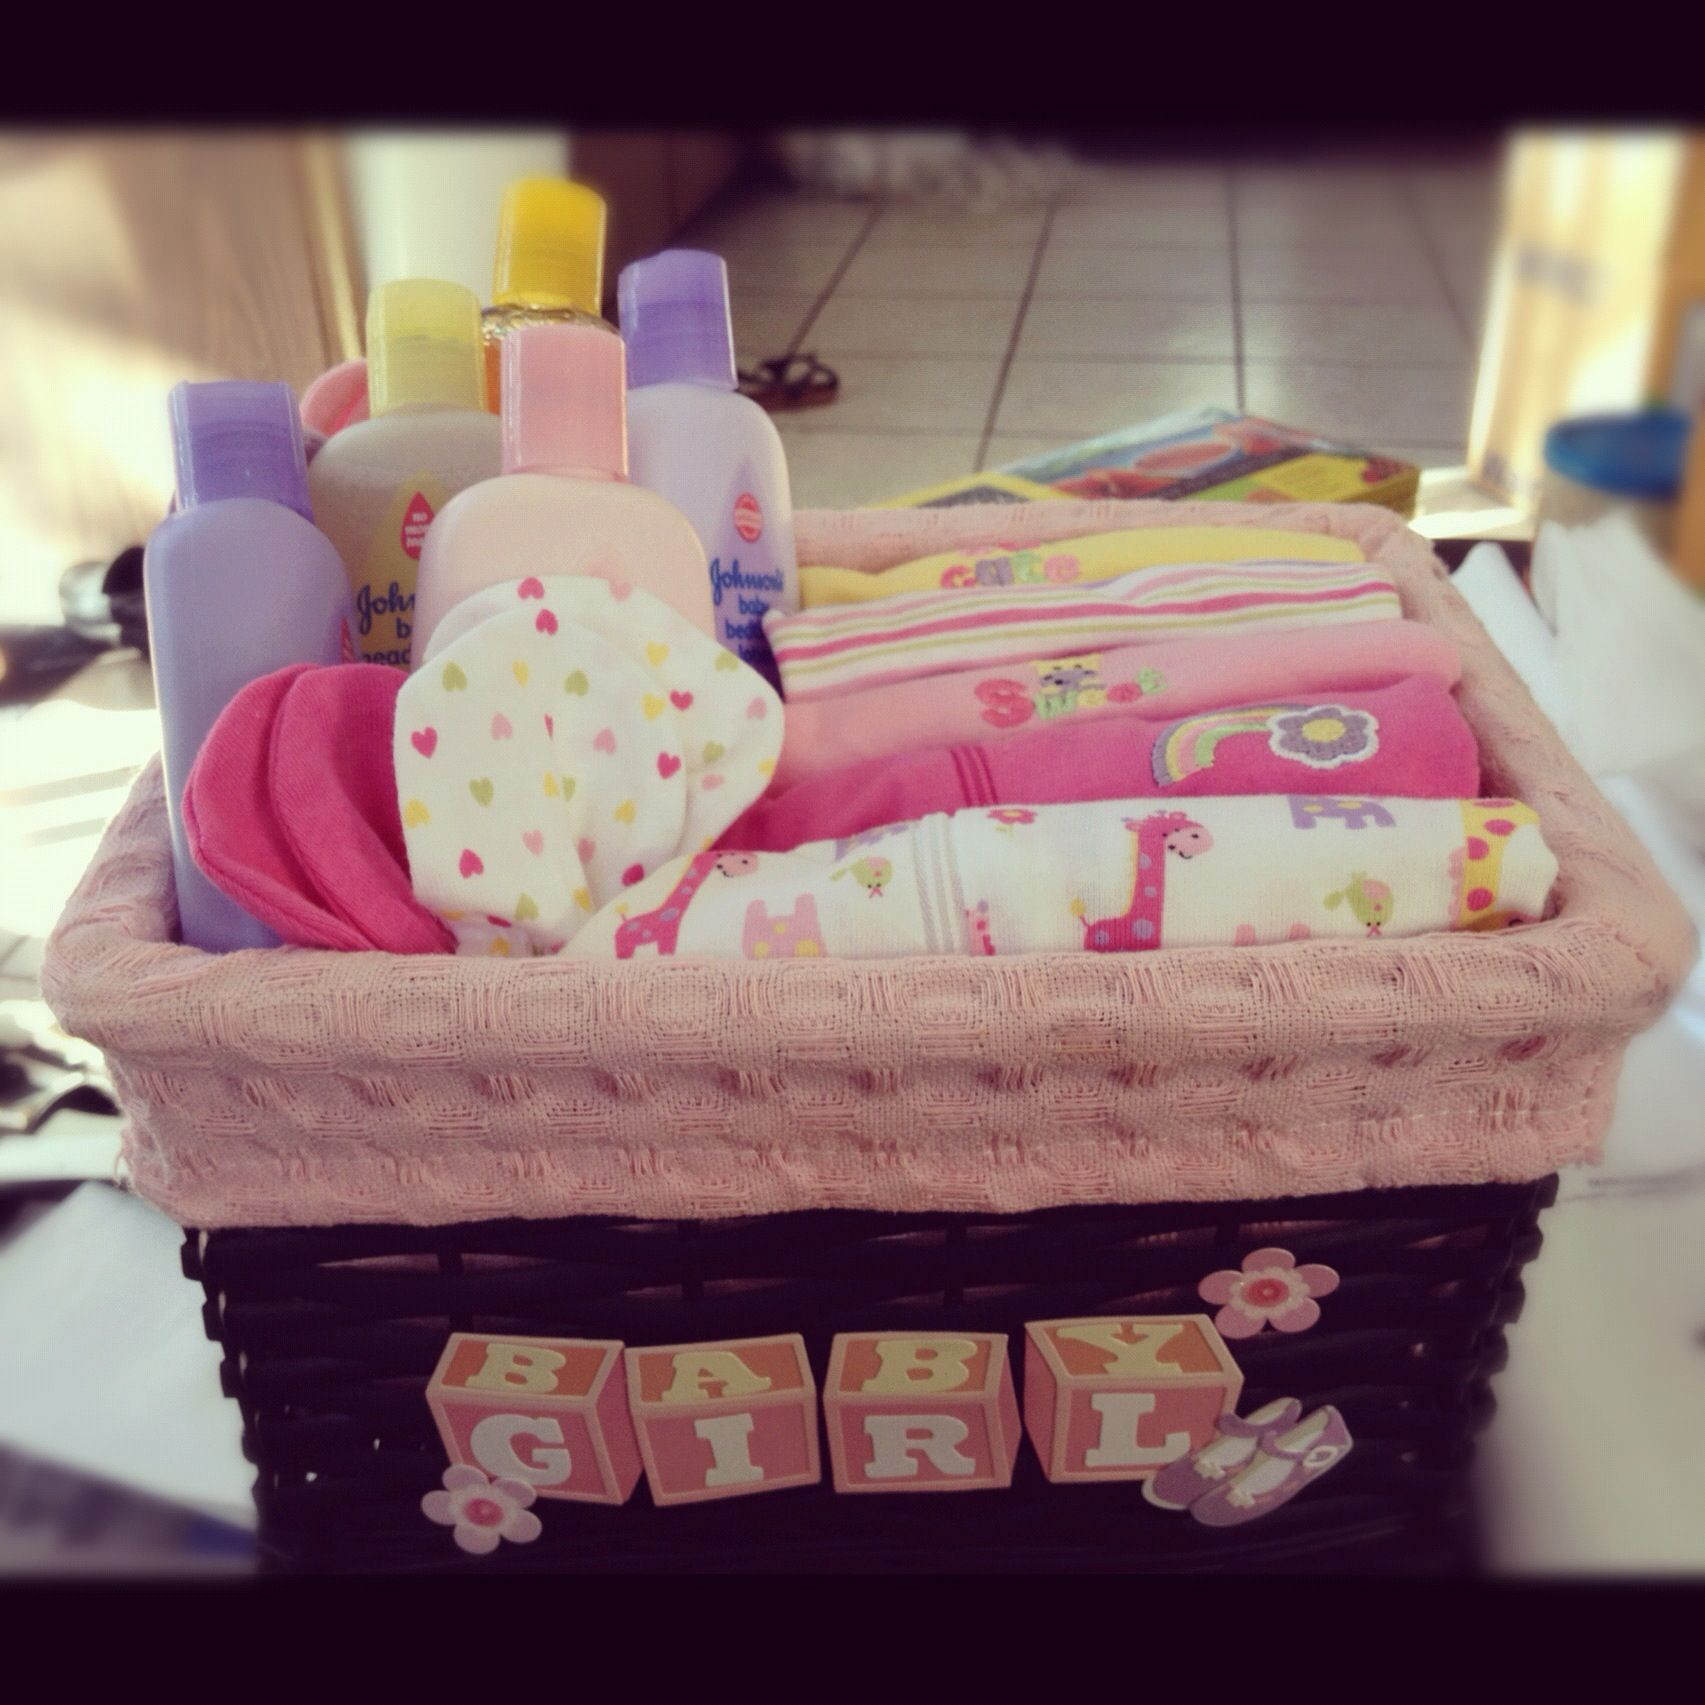 Best ideas about DIY Baby Shower Gift Basket Ideas . Save or Pin DIY Baby Shower Gift Basket Ideas for Girls Now.